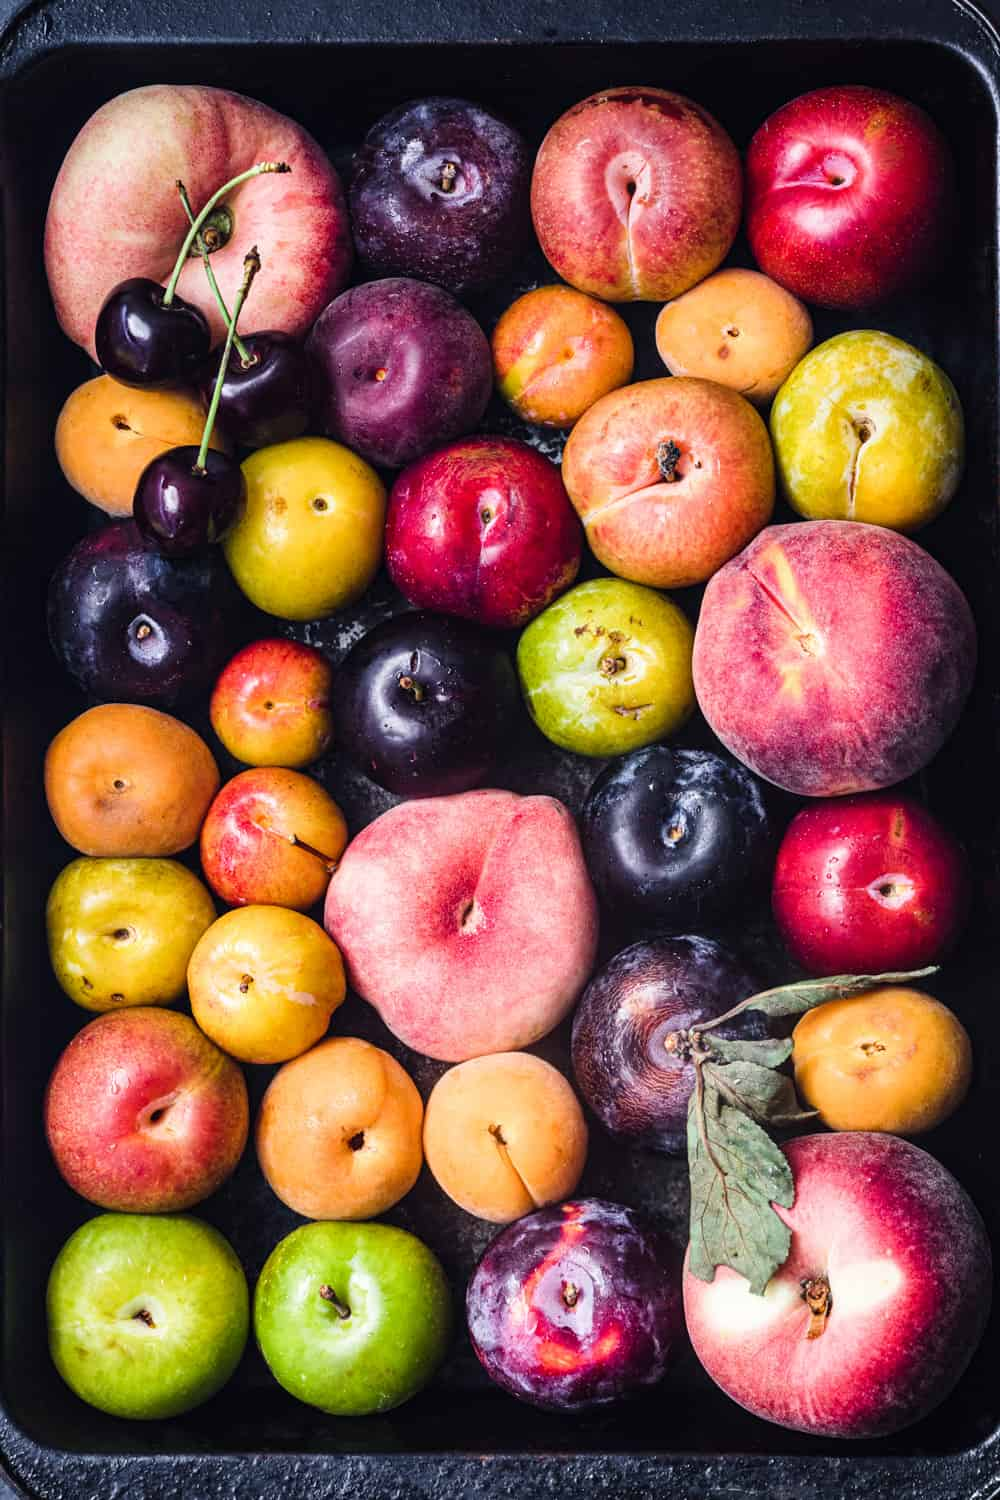 Ingredient shot of different whole raw stone fruits in lots of colors! There's peaches, plums, cherries, apricots, nectarines, and pluots.